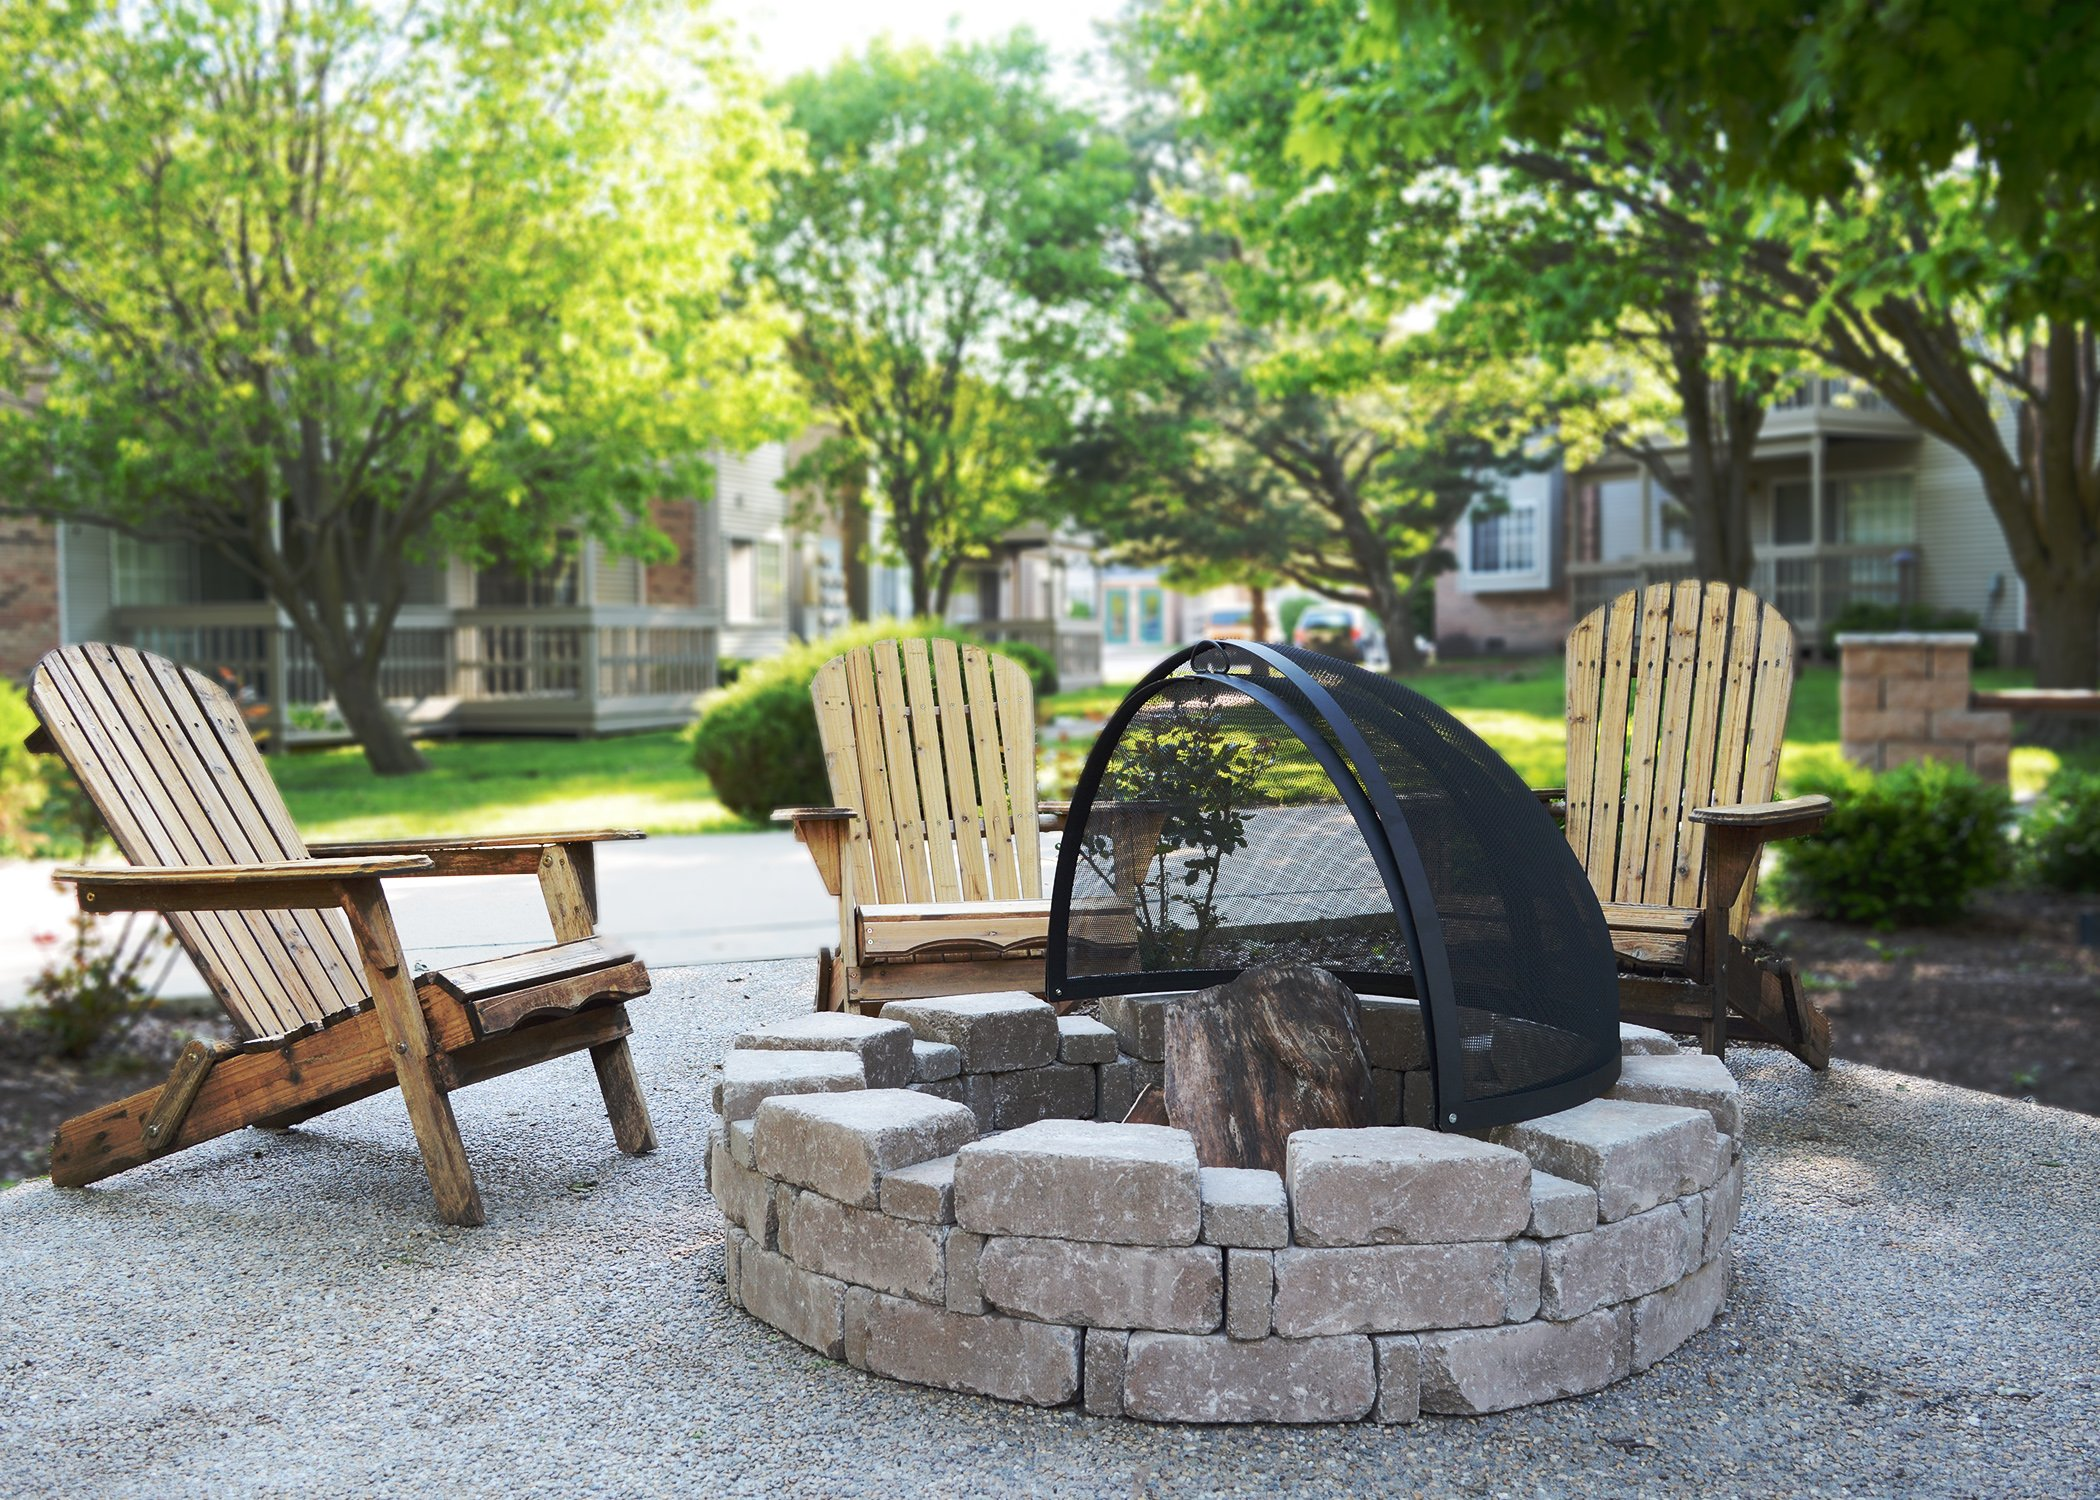 32-Inch Fire Pit Easy Access Spark Screen by Hampton's Buzaar (Image #1)